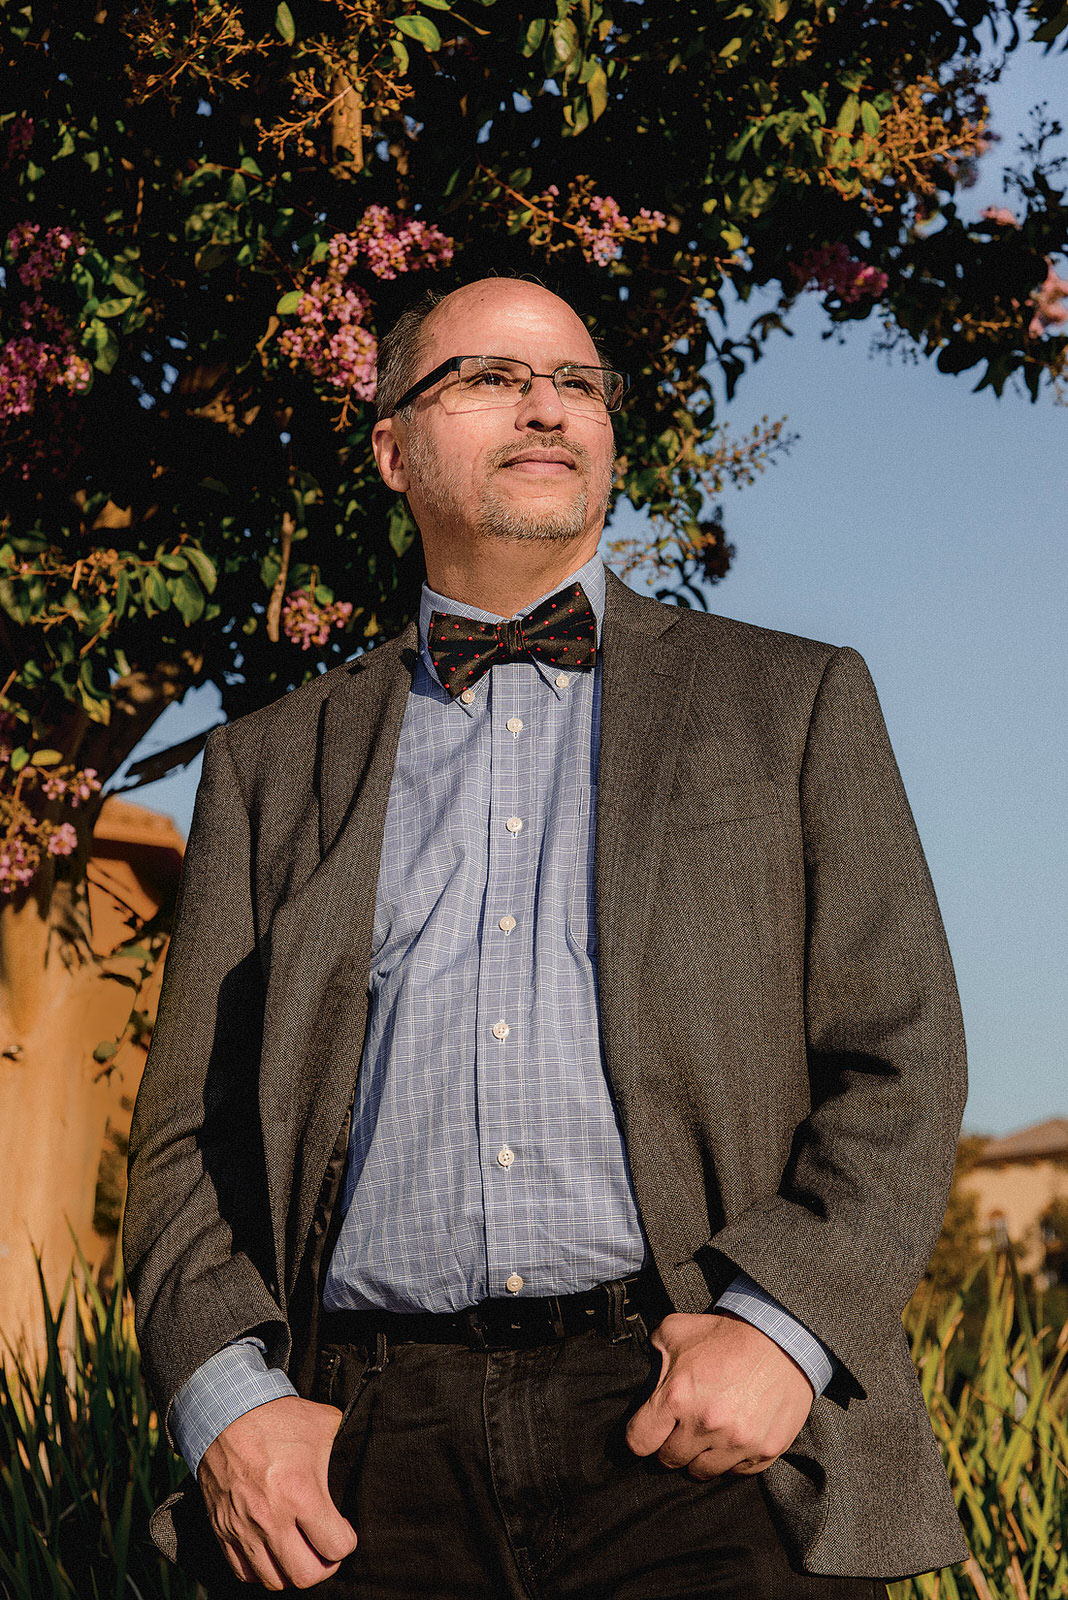 Peredo spent 18months looking for work before he took off his bow tie and landed a job.